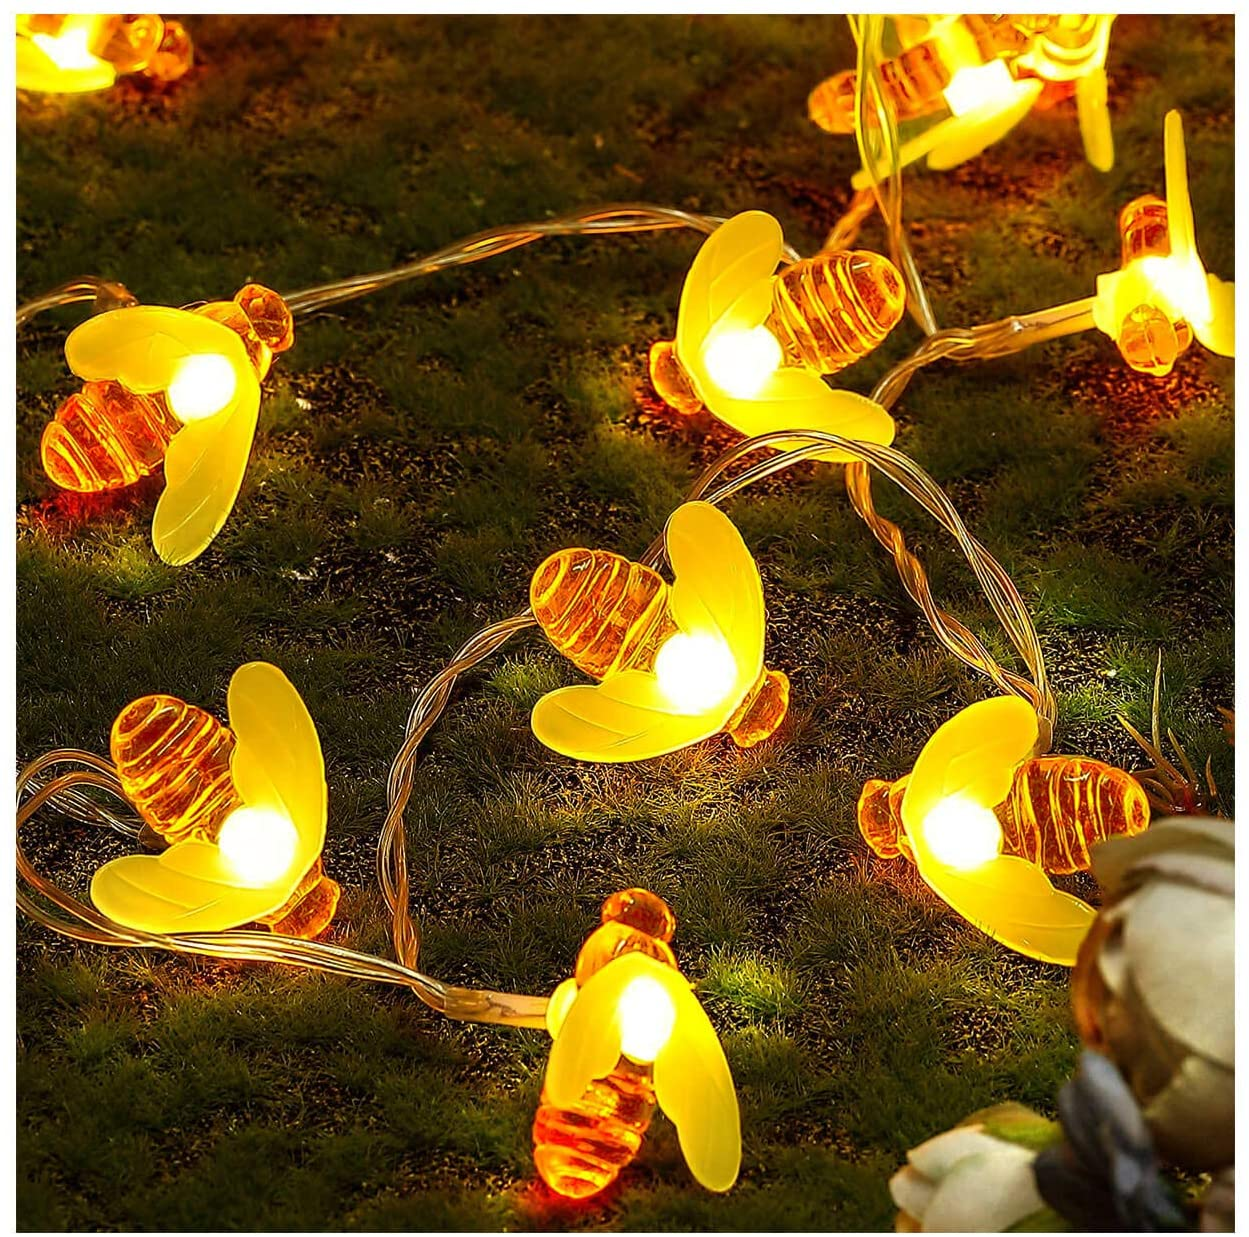 SEMILITS Honey Bee String Lights 8 Modes 30 LED Cute Bee Decor String Light Battery Operated Fairy Graden Lights for Wreath Christmas Party Patio Camping Indoor Outdoor Decorations